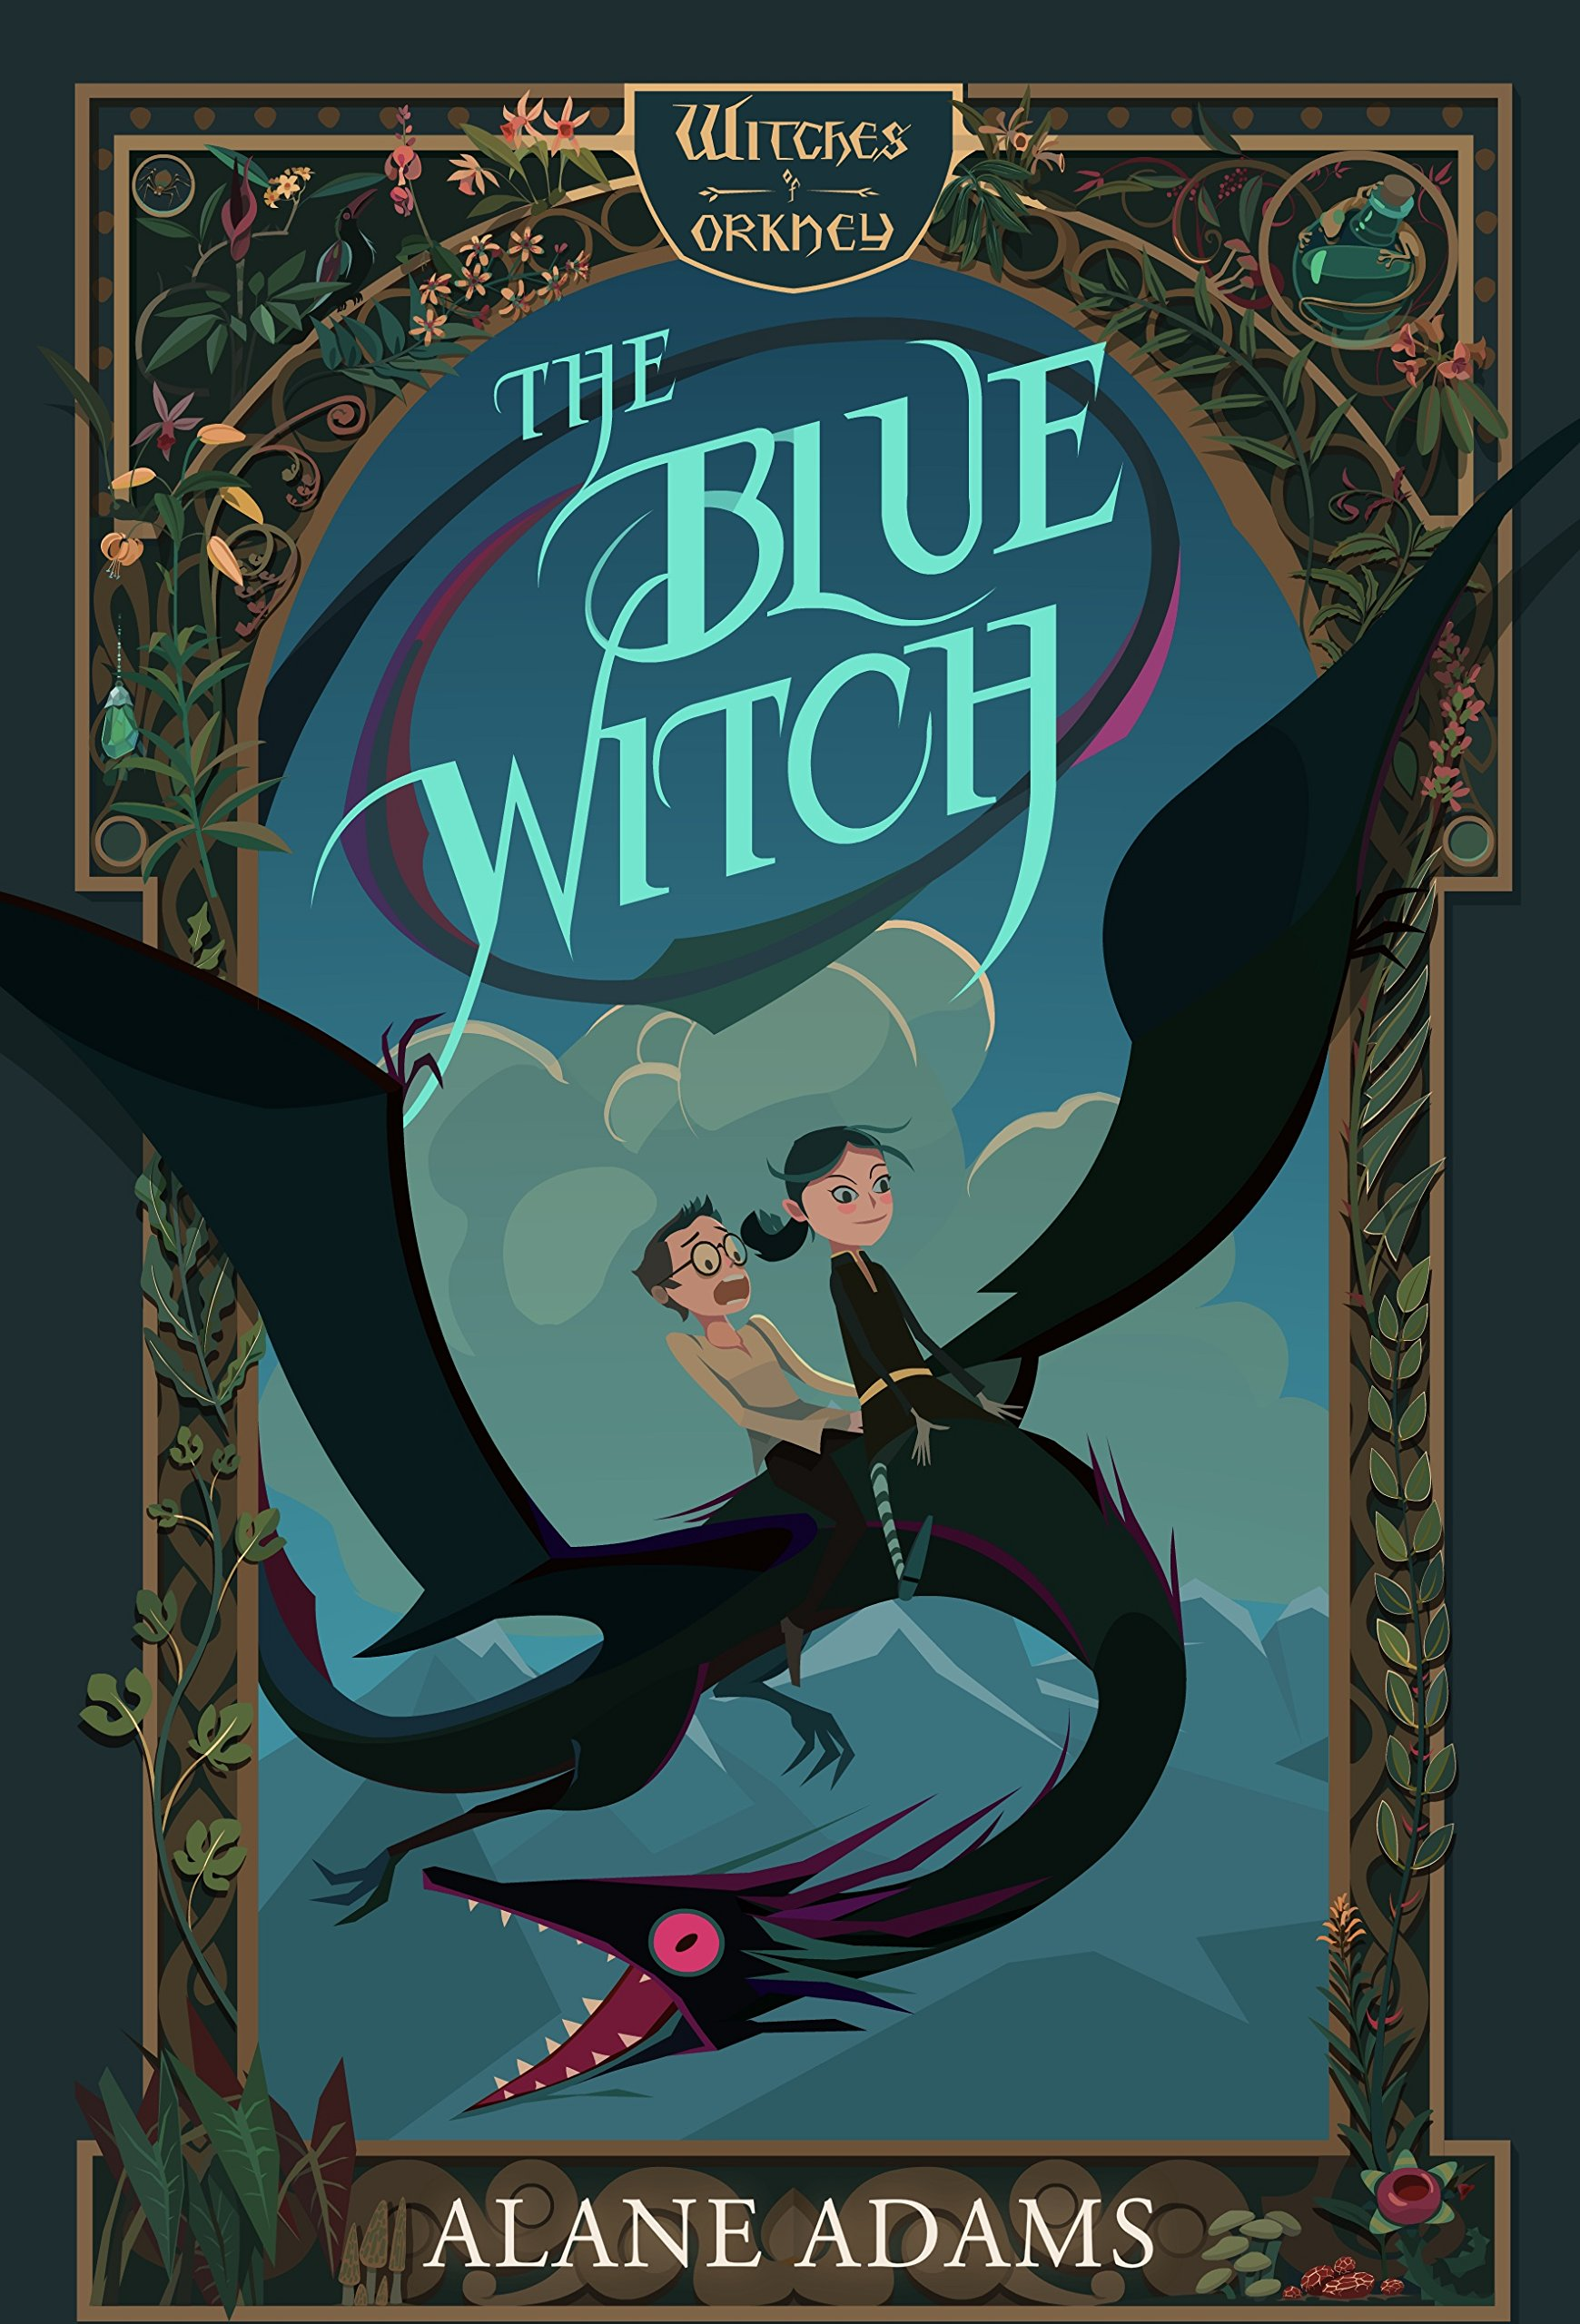 Amazon.com: The Blue Witch: The Witches of Orkney, Book One ...